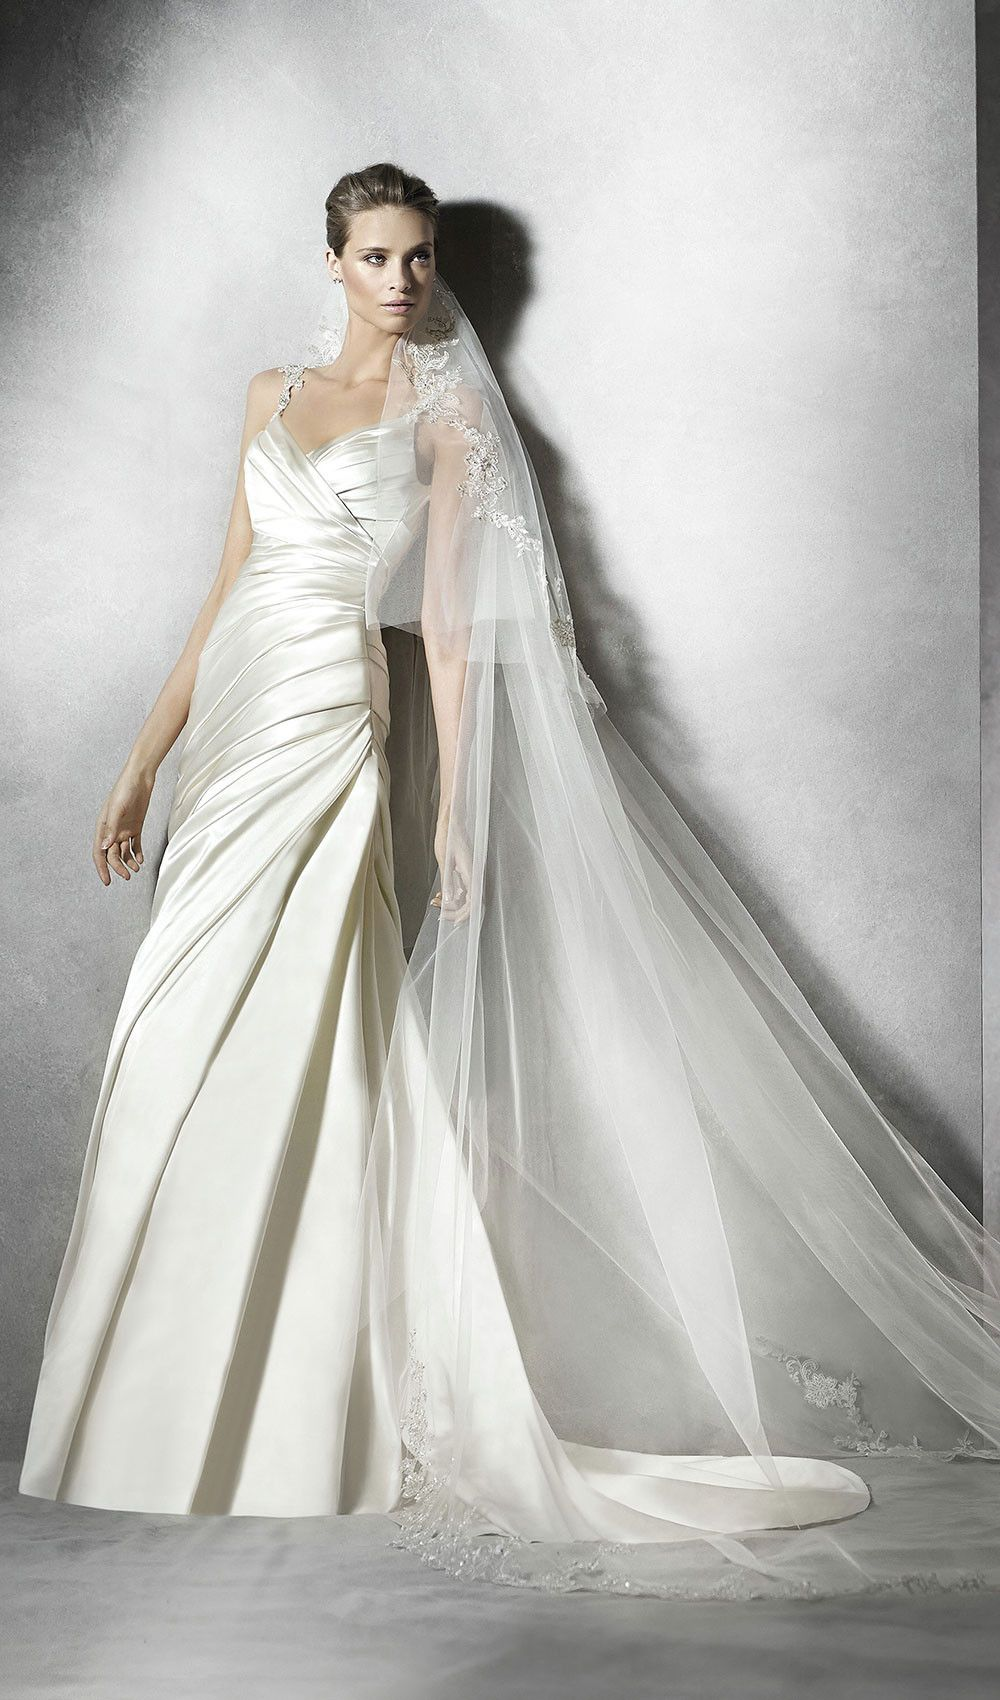 Try this flared wedding dress in draped satin draped bodice with